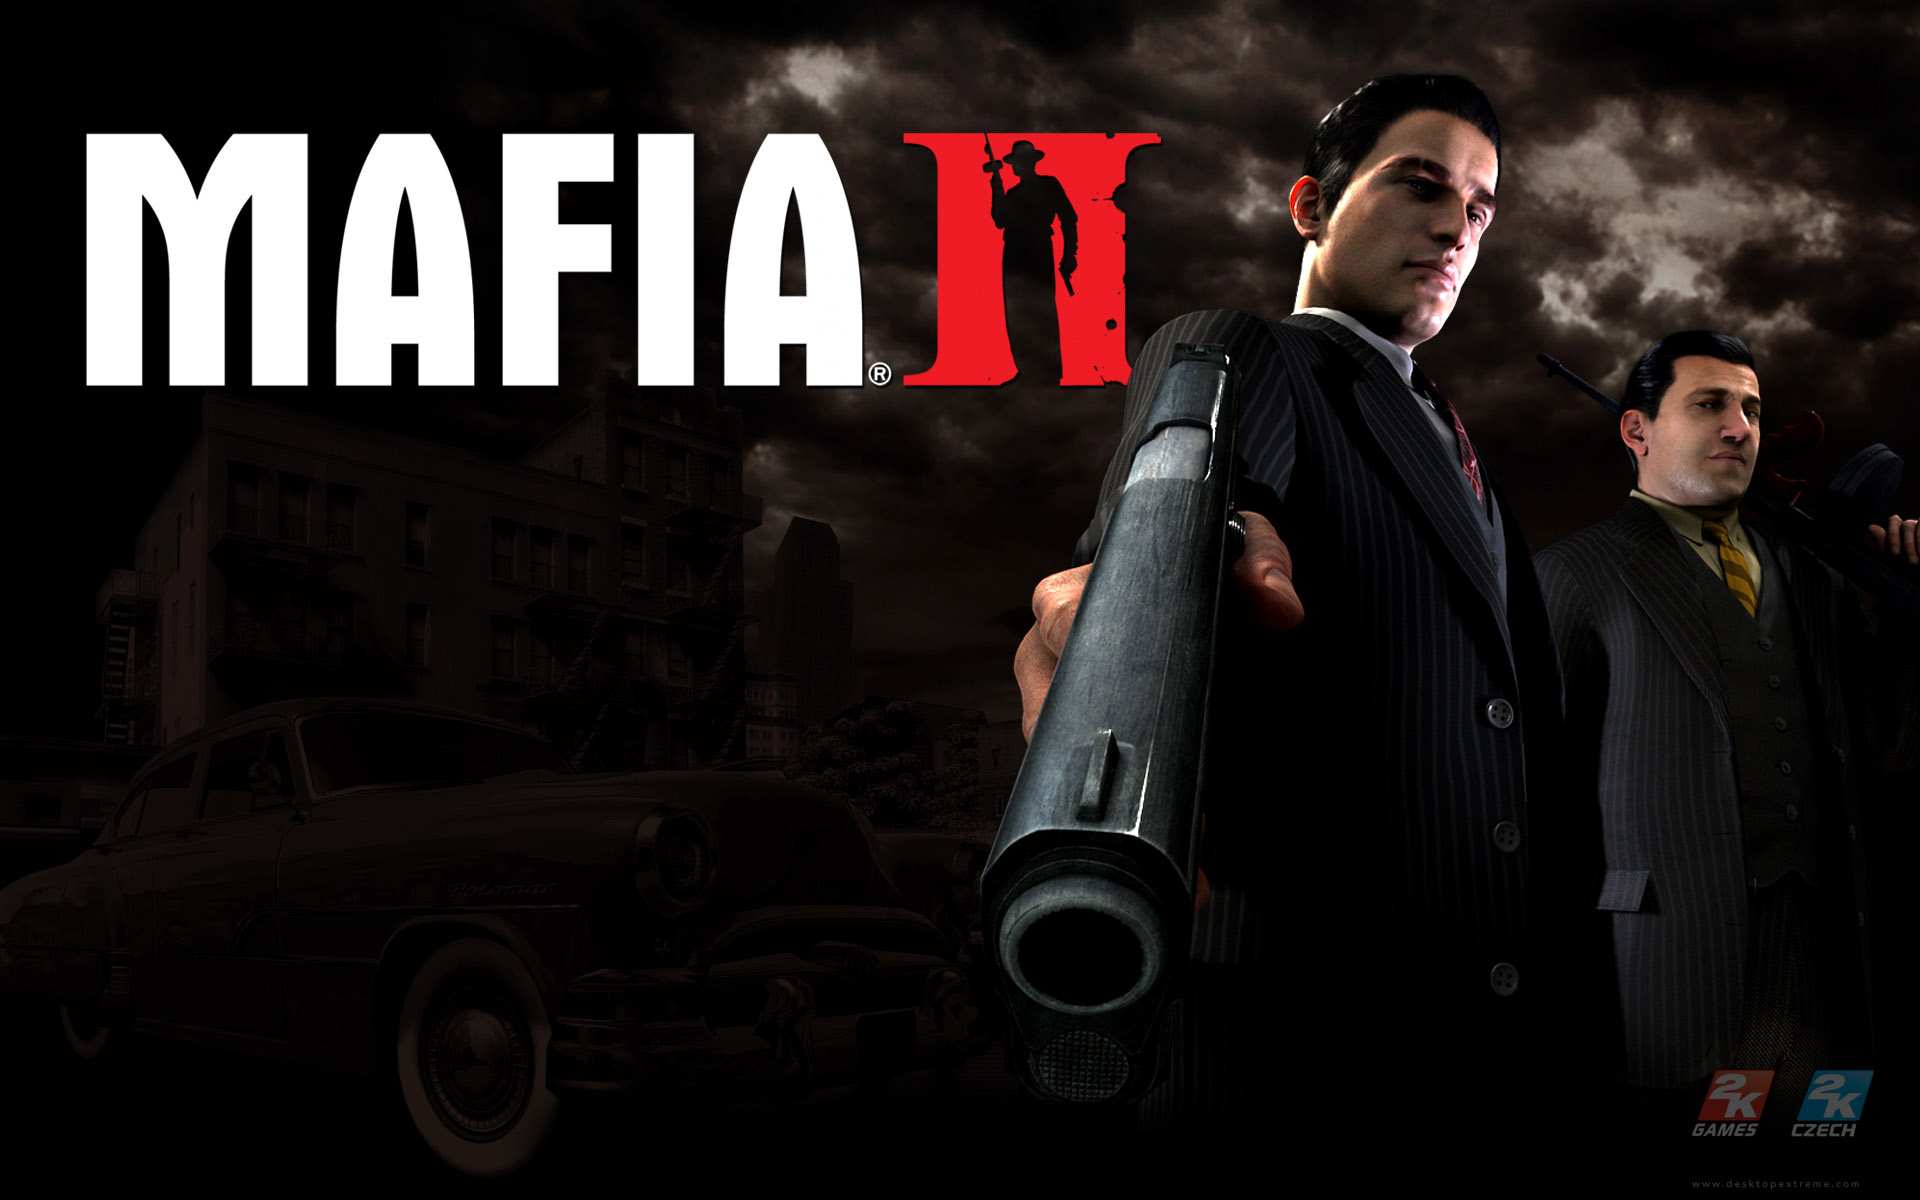 Mafia 2 highly compressed [4mb] direct download by yuvraj pawar[link updated]